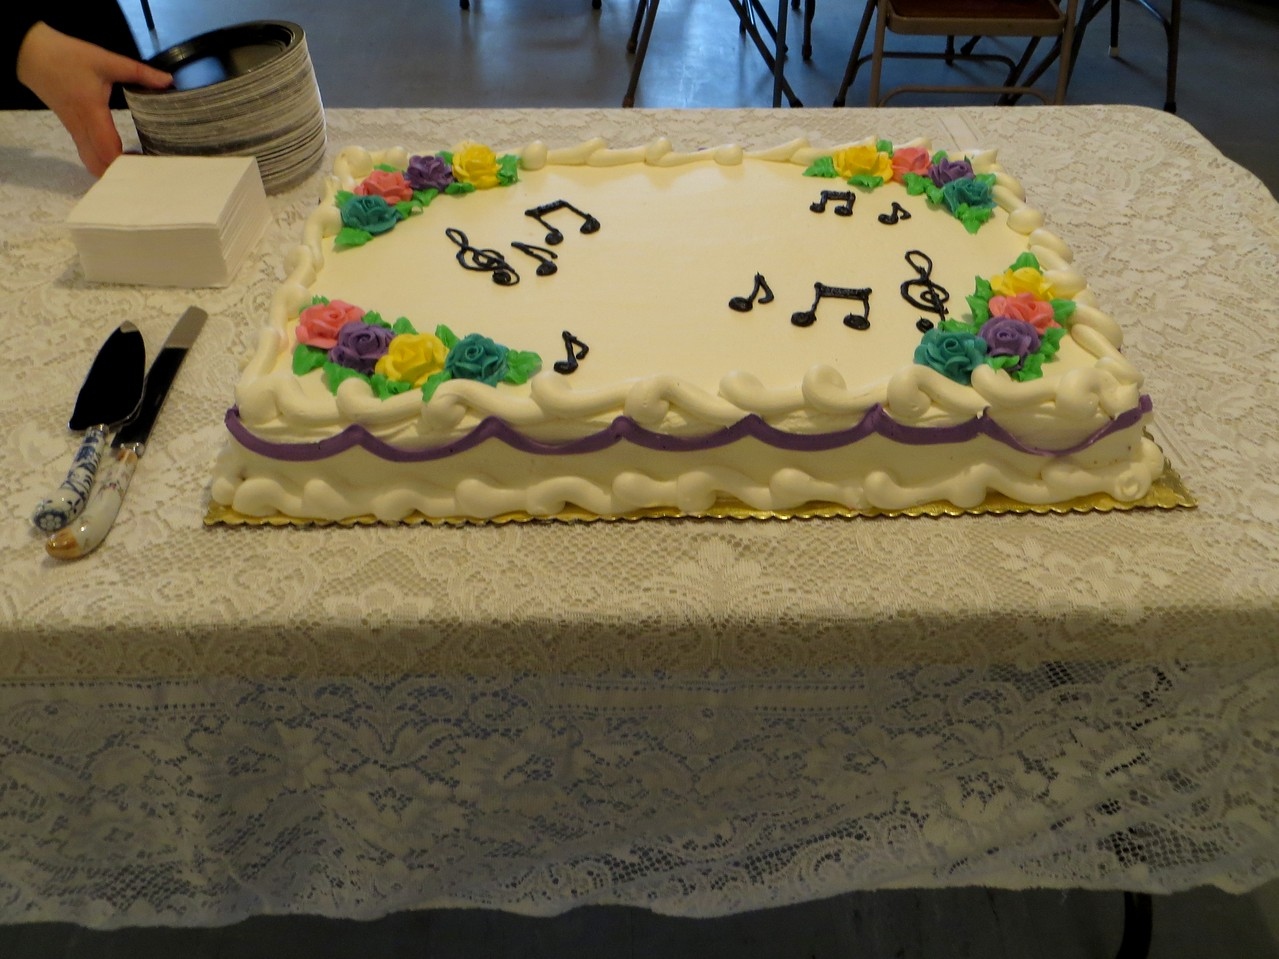 Lovely and delicious cake donated by Patty Cakes Bakery in Rocky Hill